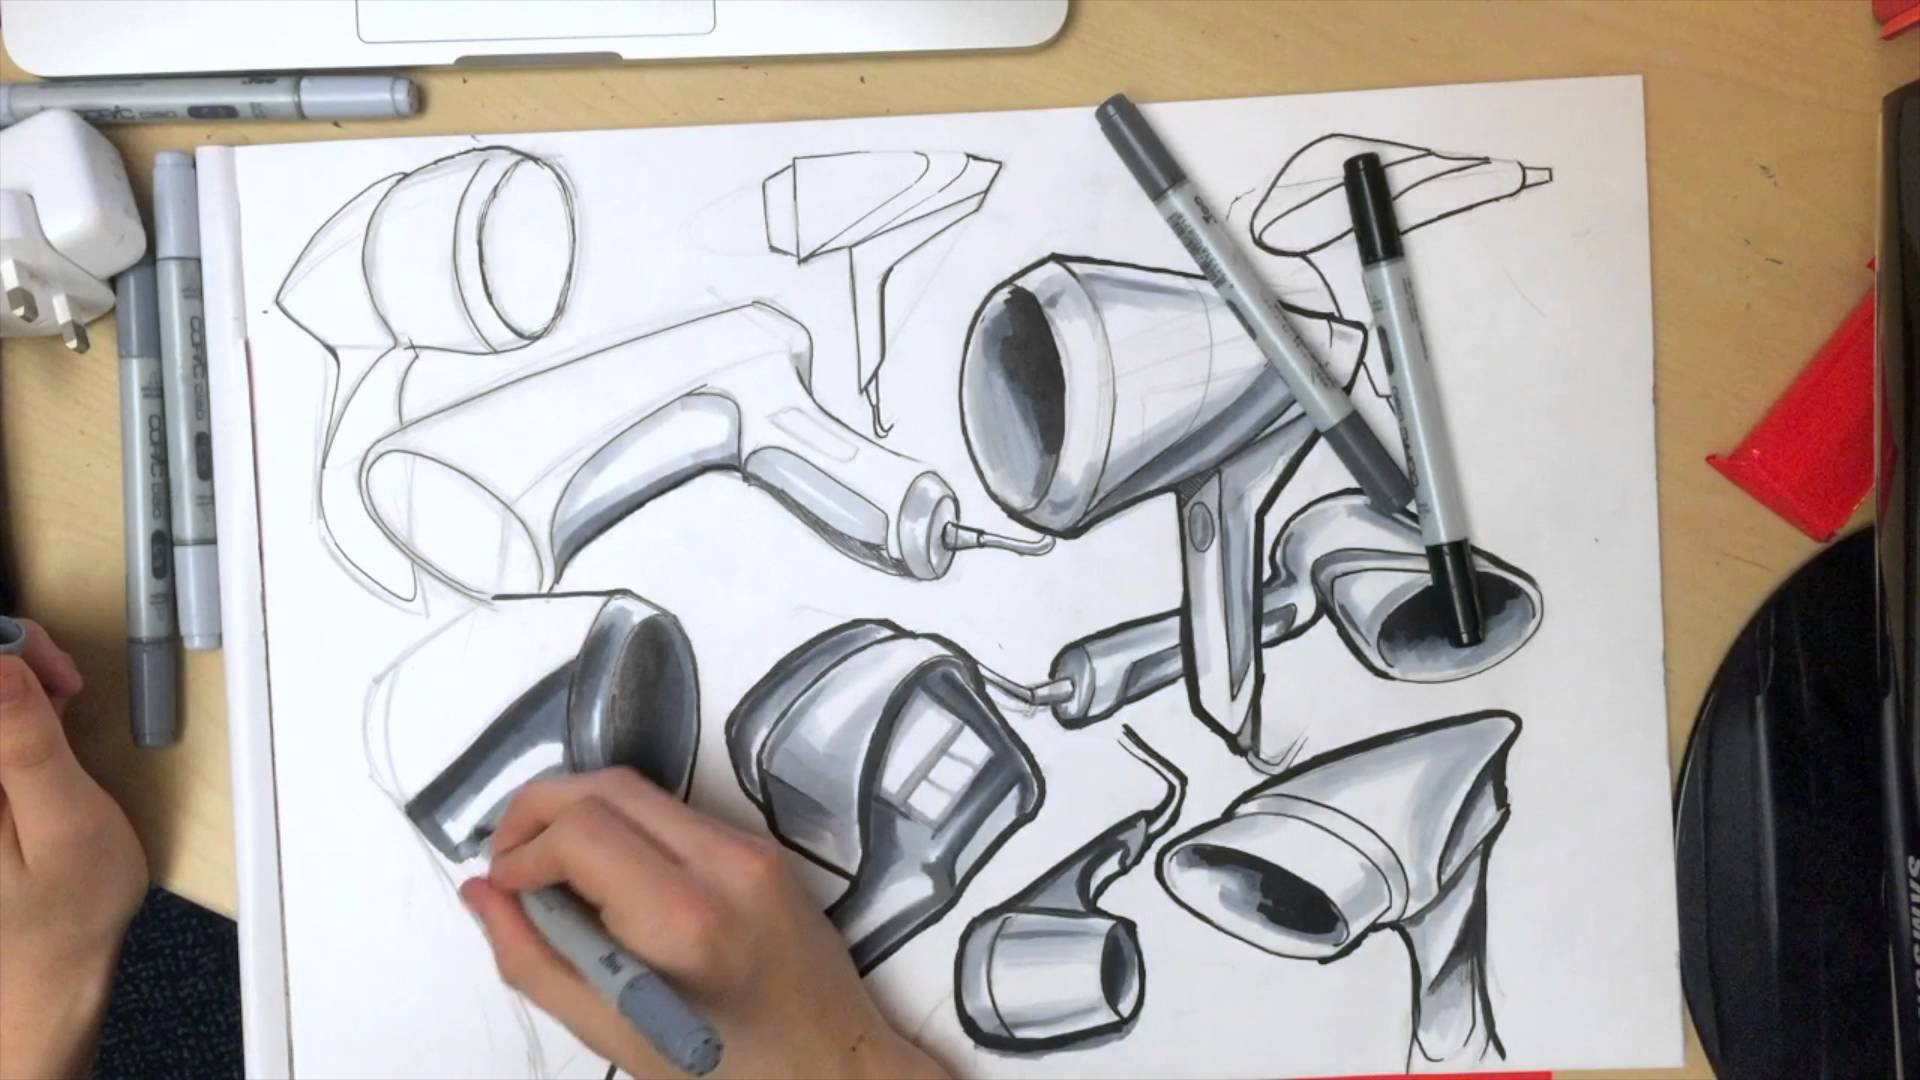 1920x1080 Product Design Drawing Time Lapse Of Hair Dryer Ideation